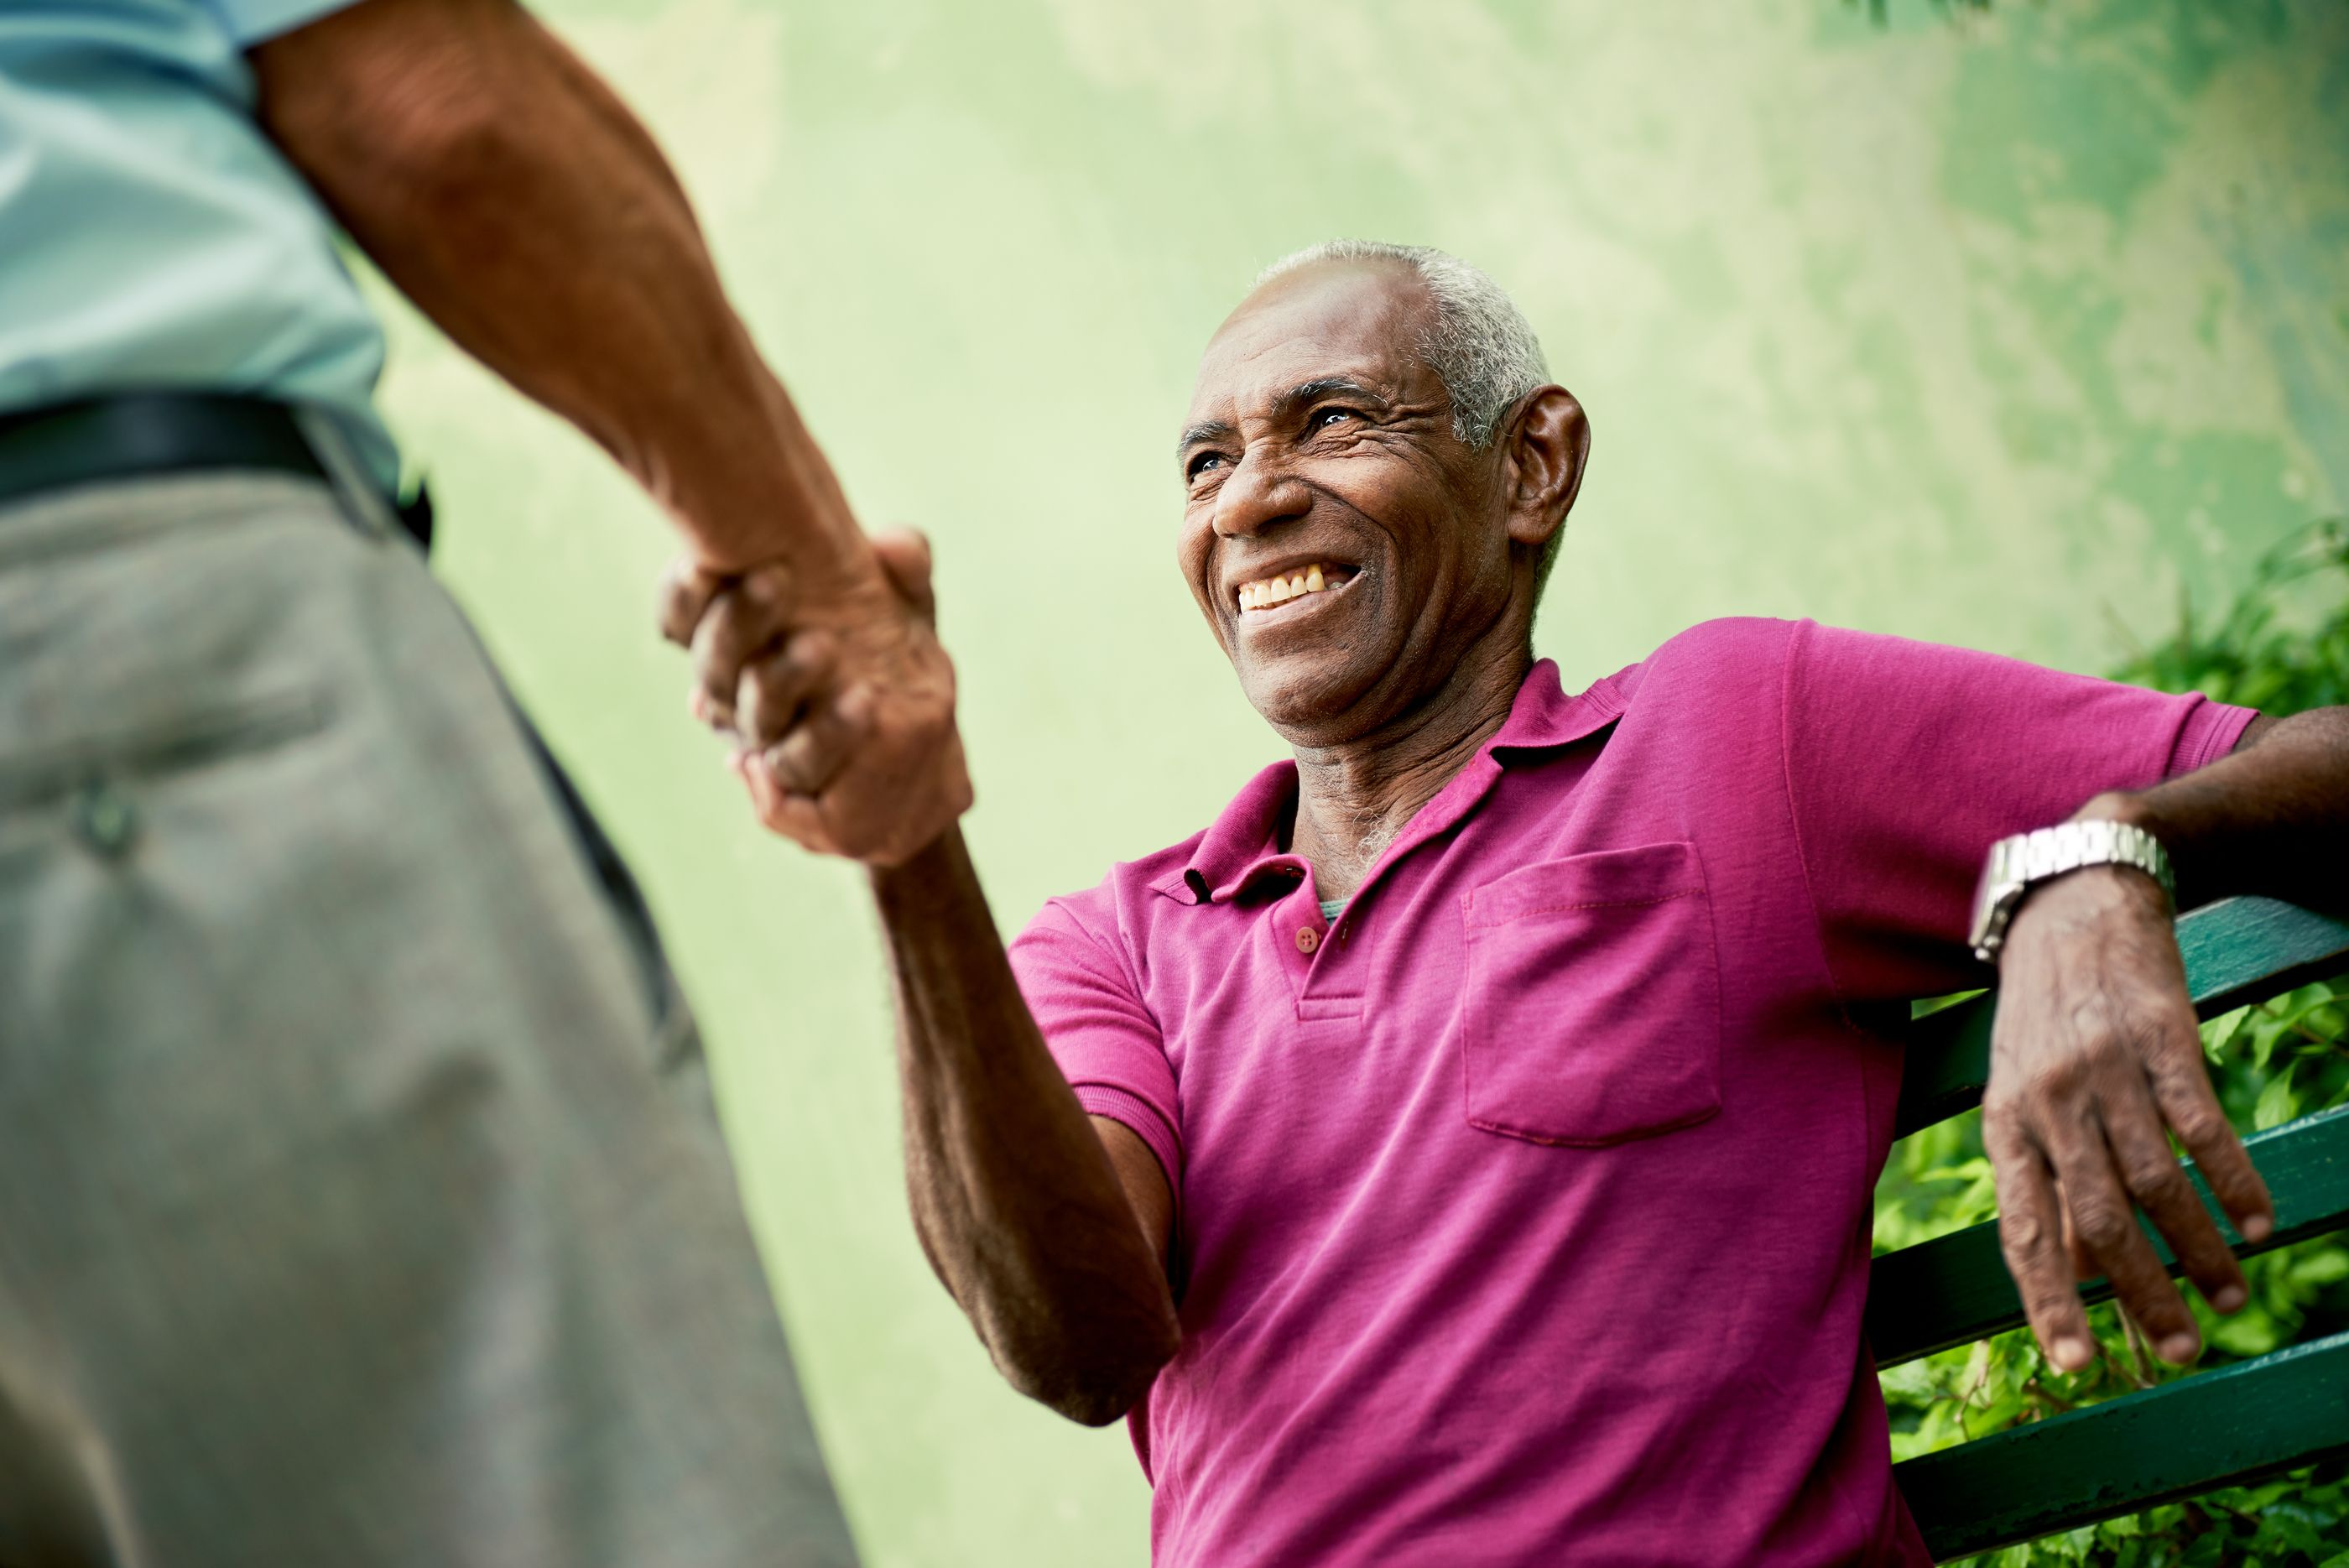 Three Positive Steps To Quality Home Care For Aging Veterans